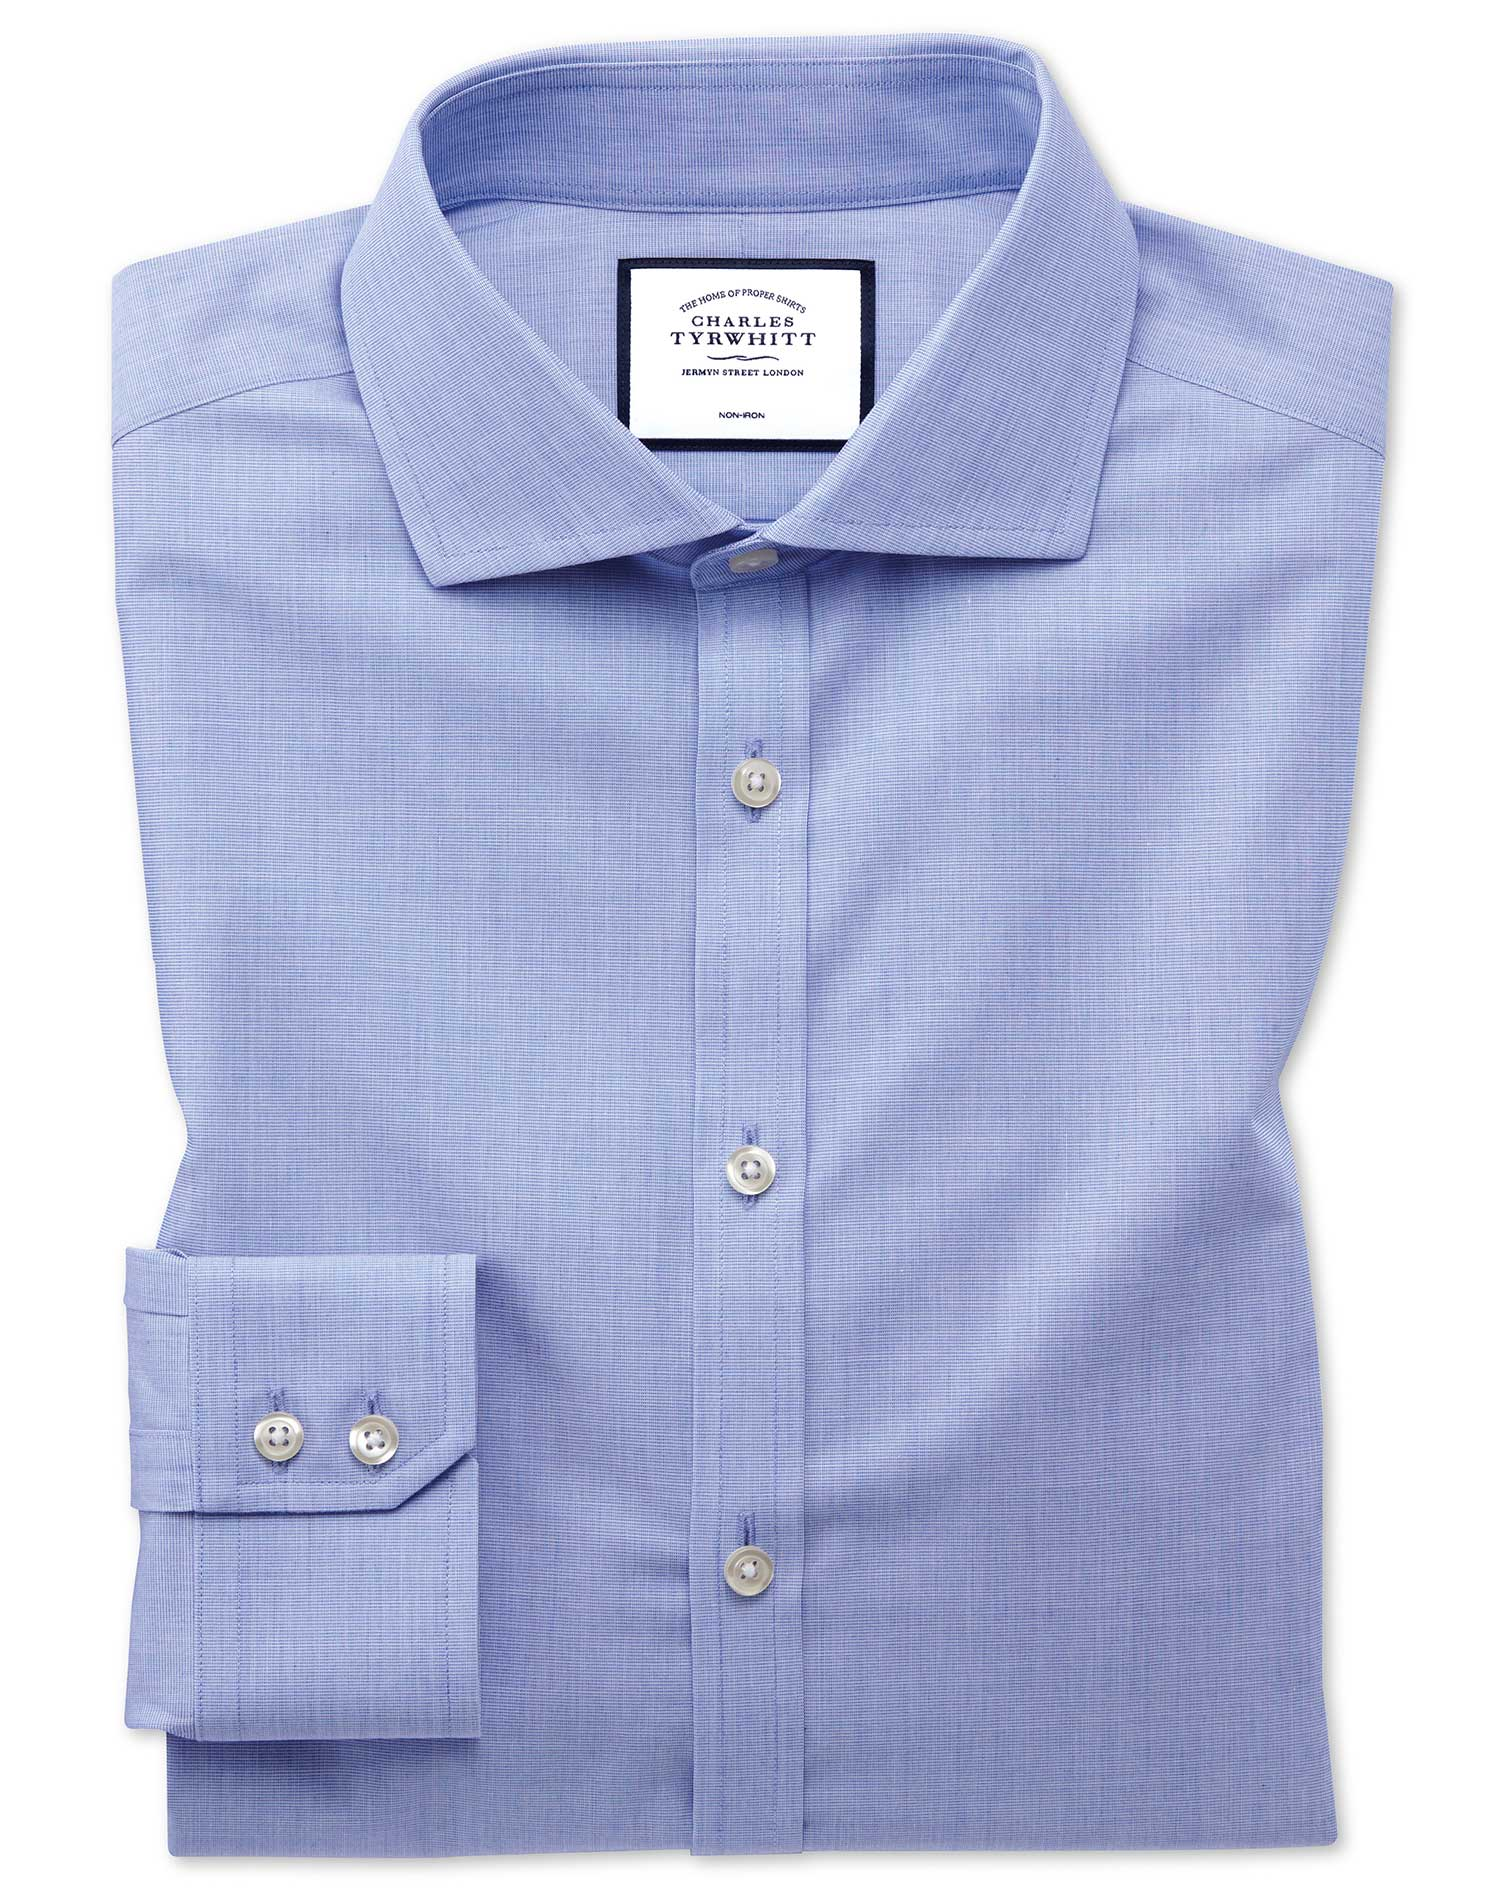 Extra Slim Fit Non-Iron 4-Way Stretch Blue Cotton Formal Shirt Single Cuff Size 15.5/37 by Charles T